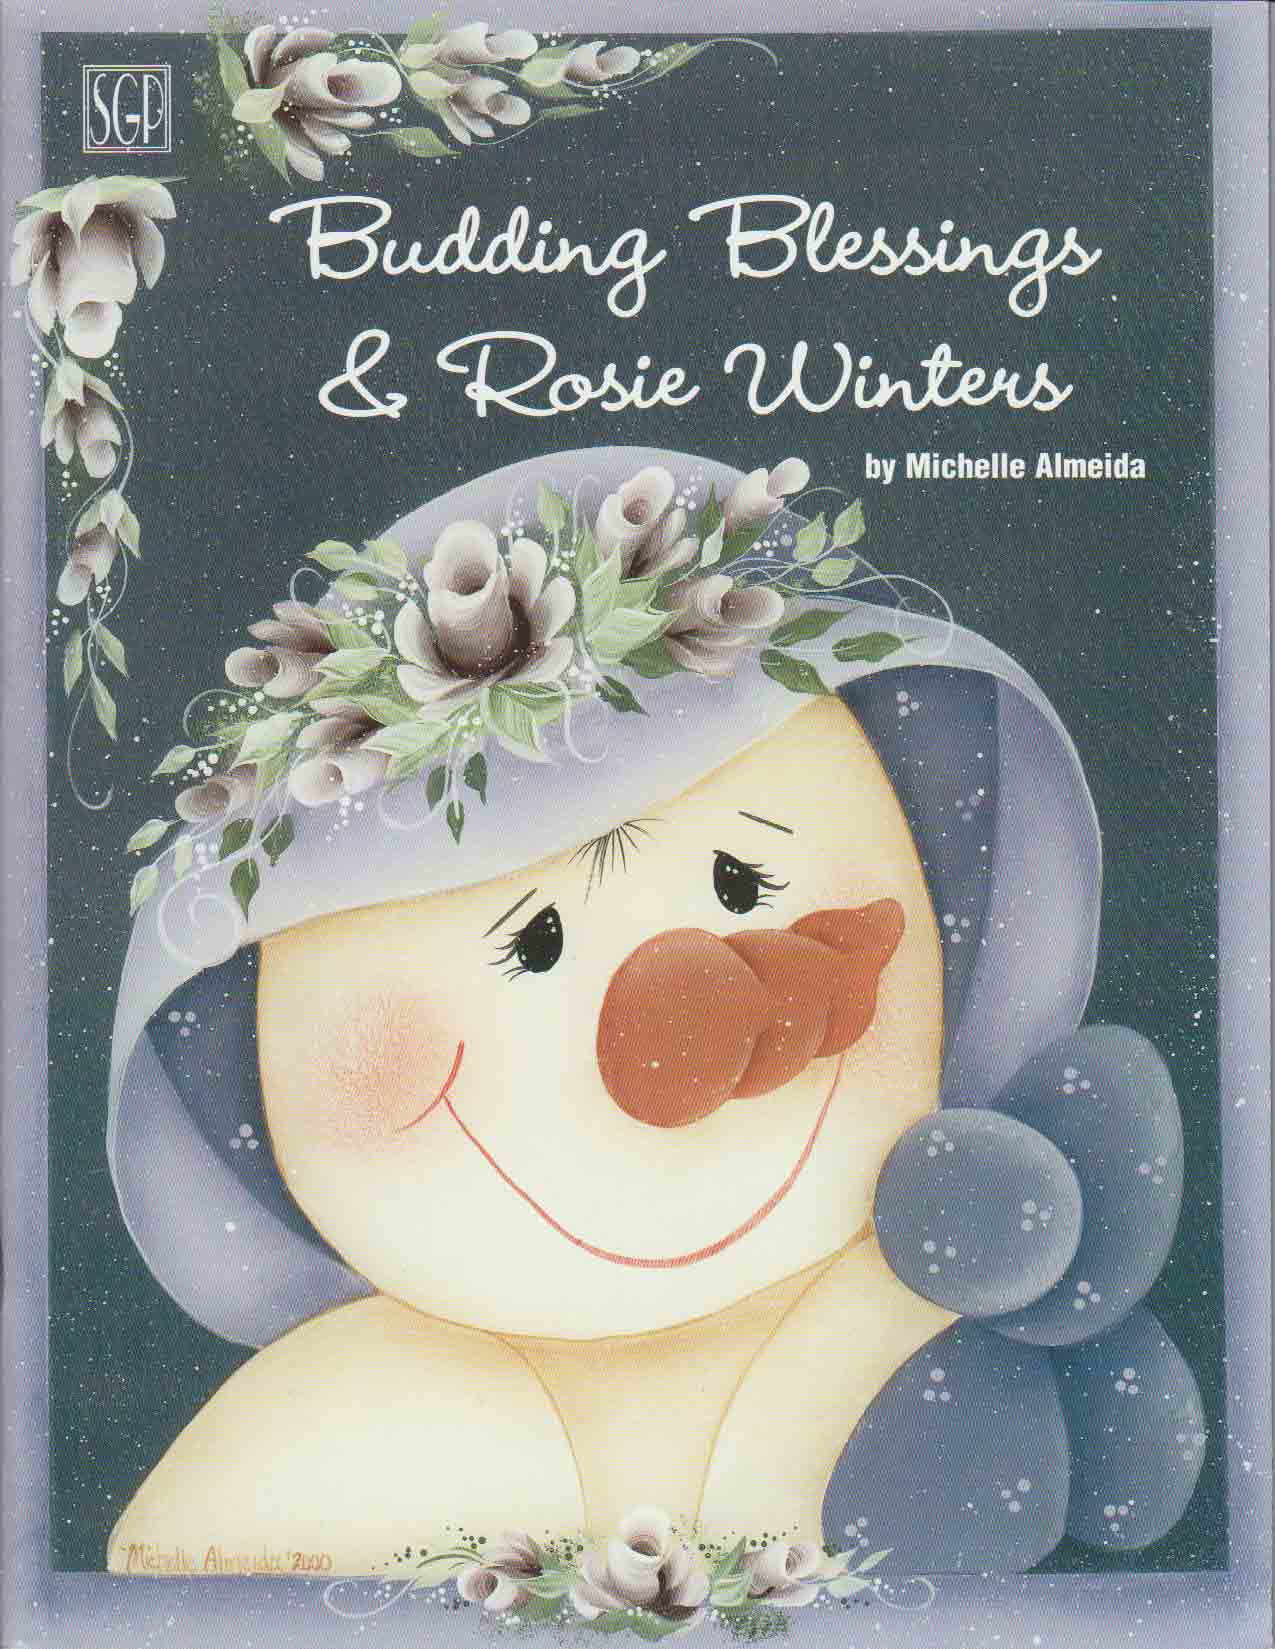 Budding Blessings & Rosie Winters - Michelle Almeida